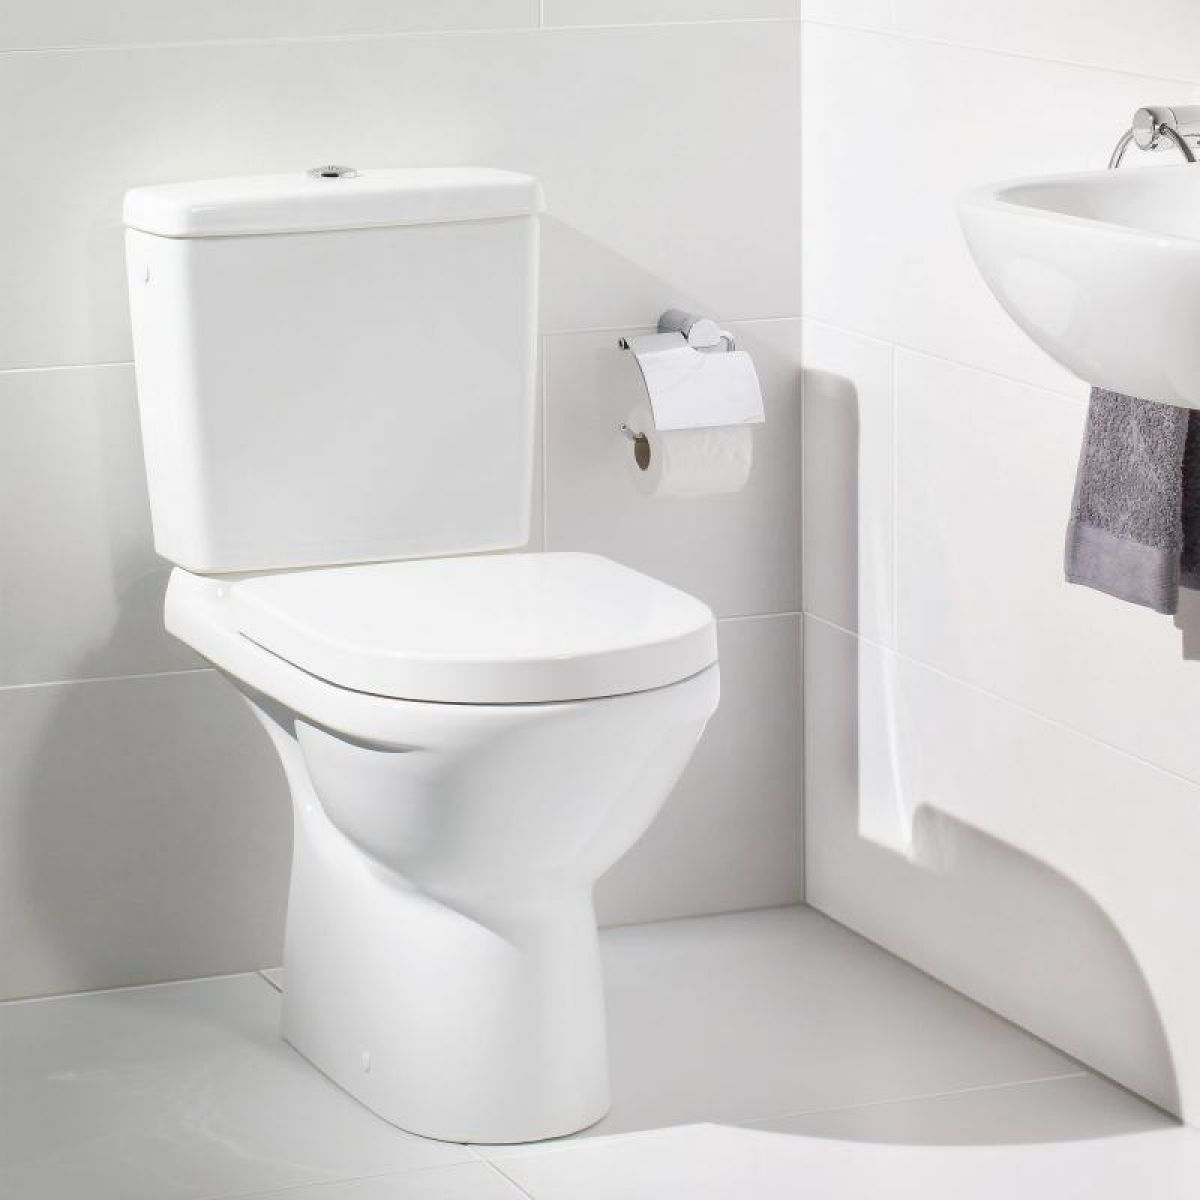 Wc Bril Demonteren Villeroy And Boch O Novo Close Coupled Toilet Uk Bathrooms